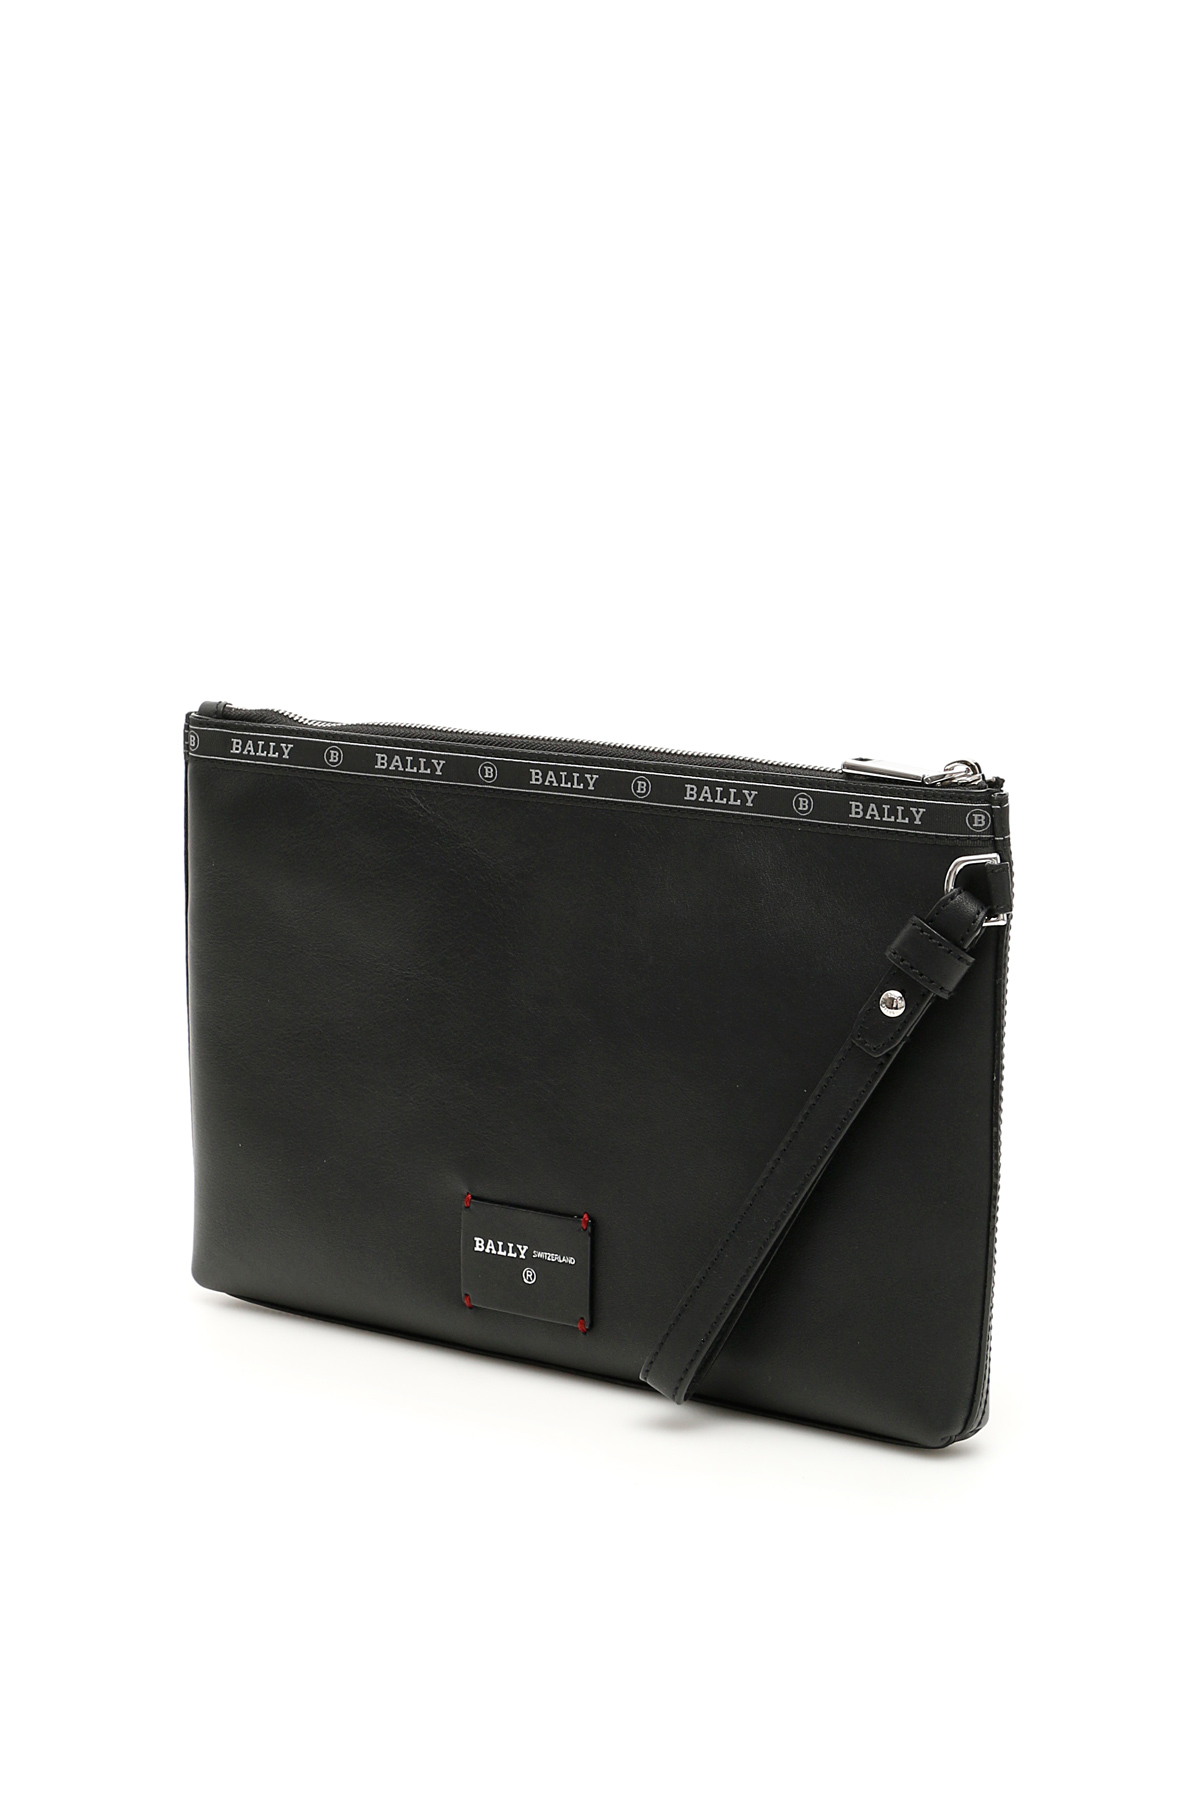 BALLY Pouches TRAINSPOTTING HARTLAND LEATHER POUCH